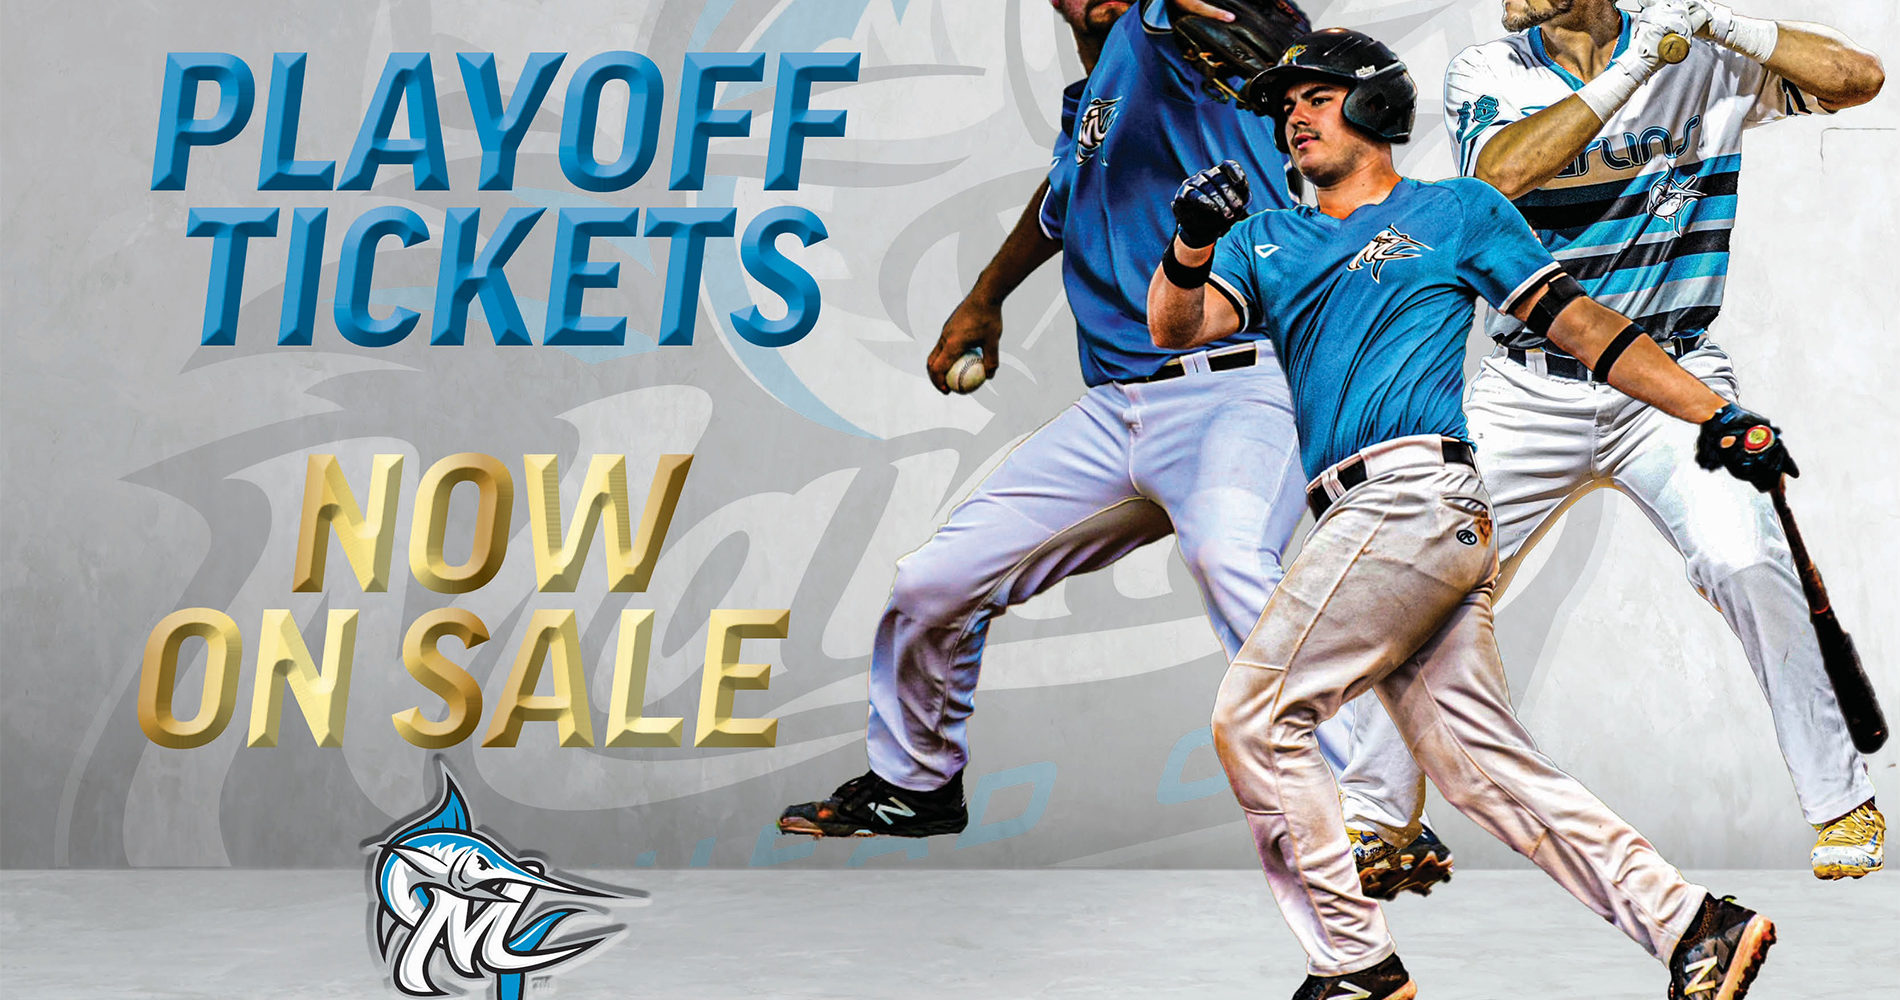 Playoff tickets on sale NOW!